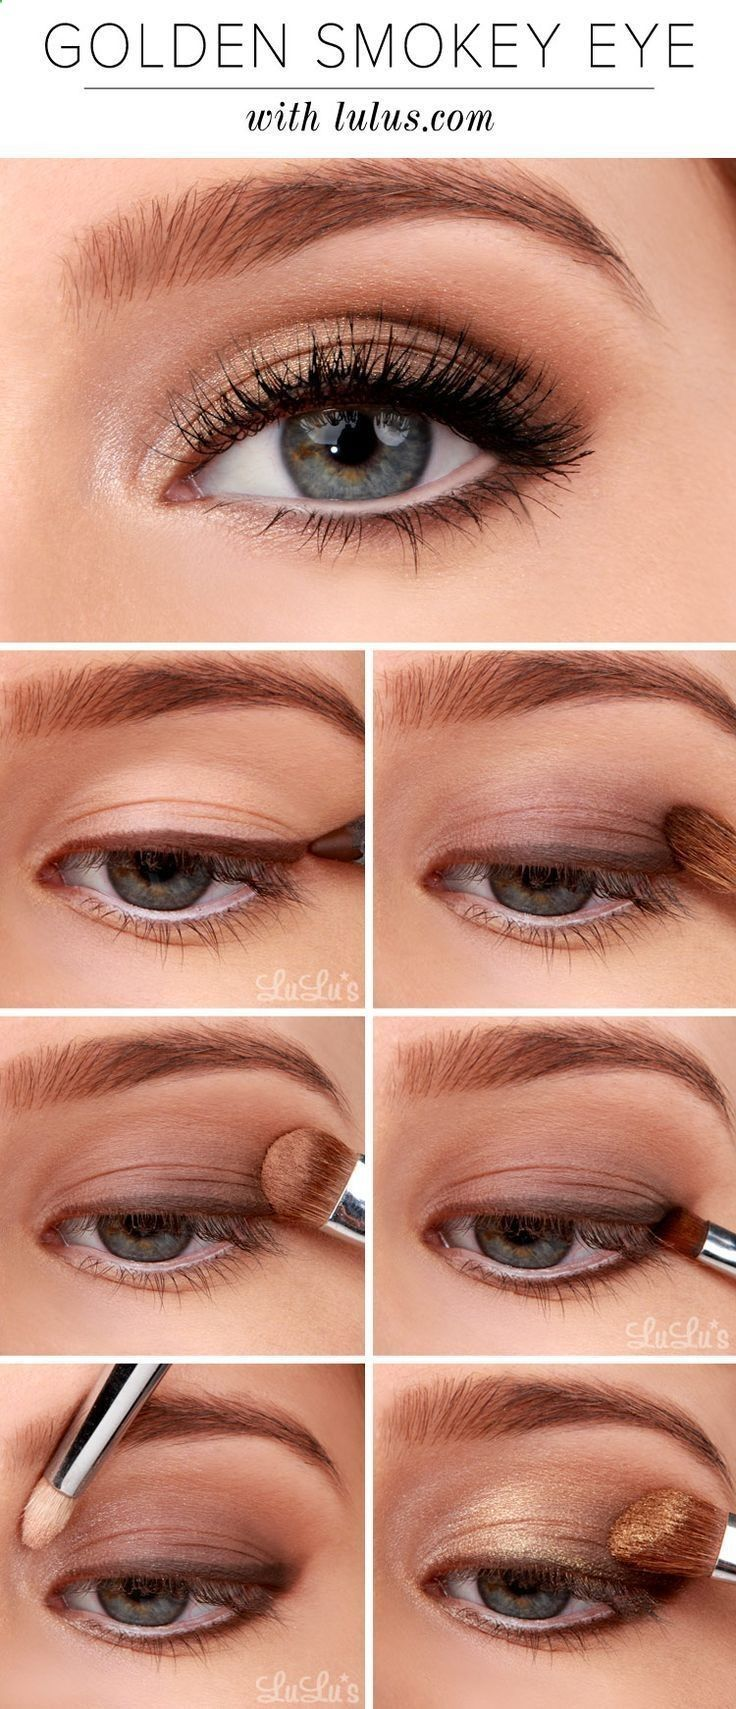 12 Awesome Smokey Eyes Tutorials The Weekly Round Up - Titicrafty by Camila